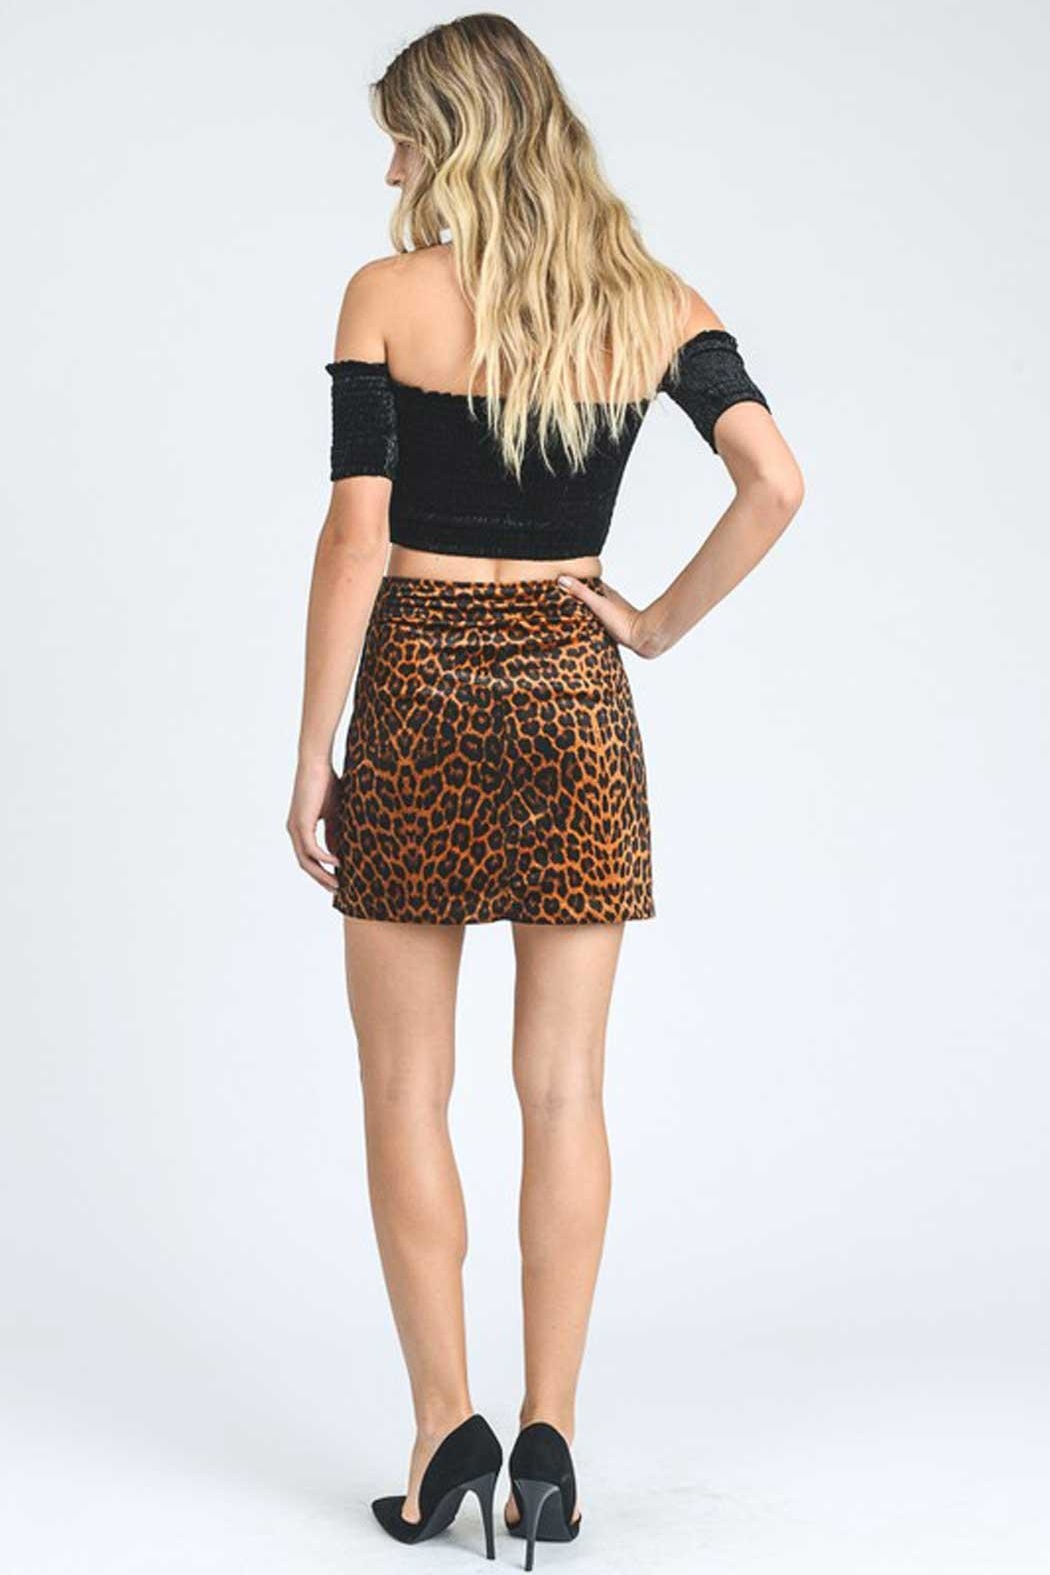 7c78b142f9669 storia Leopard Print Skirt from Alabama by Adrenaline — Shoptiques